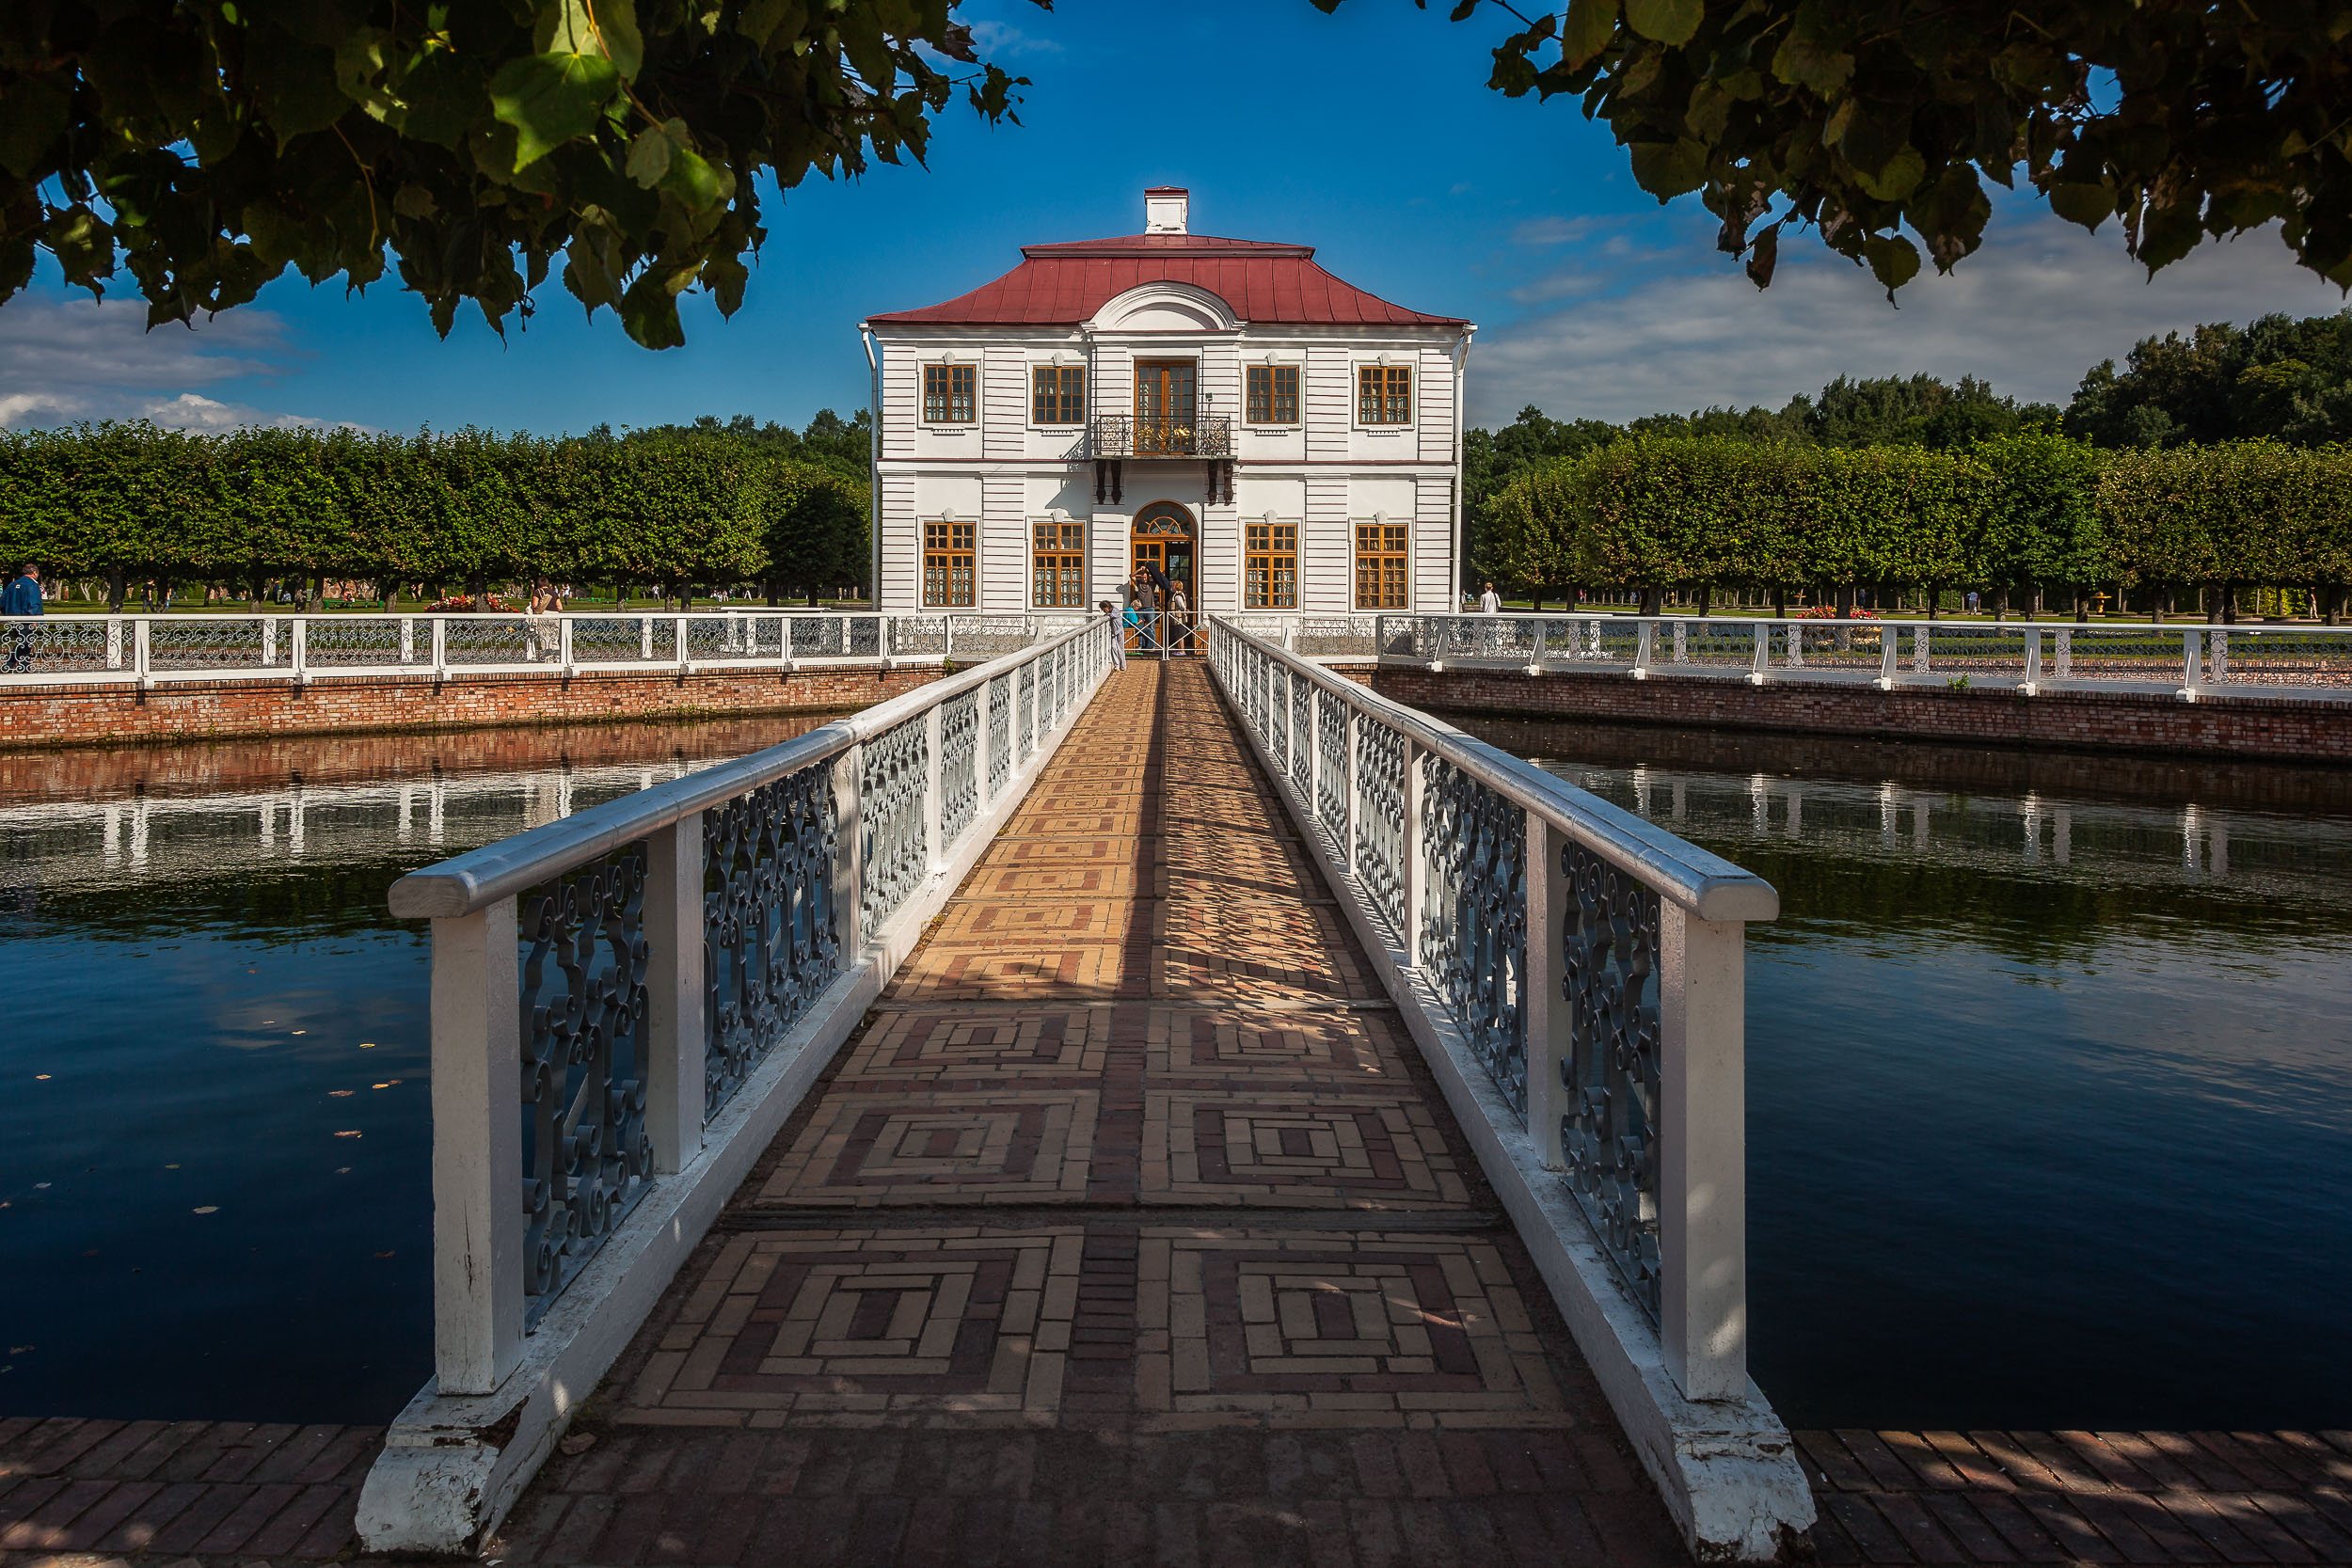 A lovely,    quiet retreat    for the former    Tzar    at    Peterhof Summer Palace    near    St. Petersburg, Russia   .